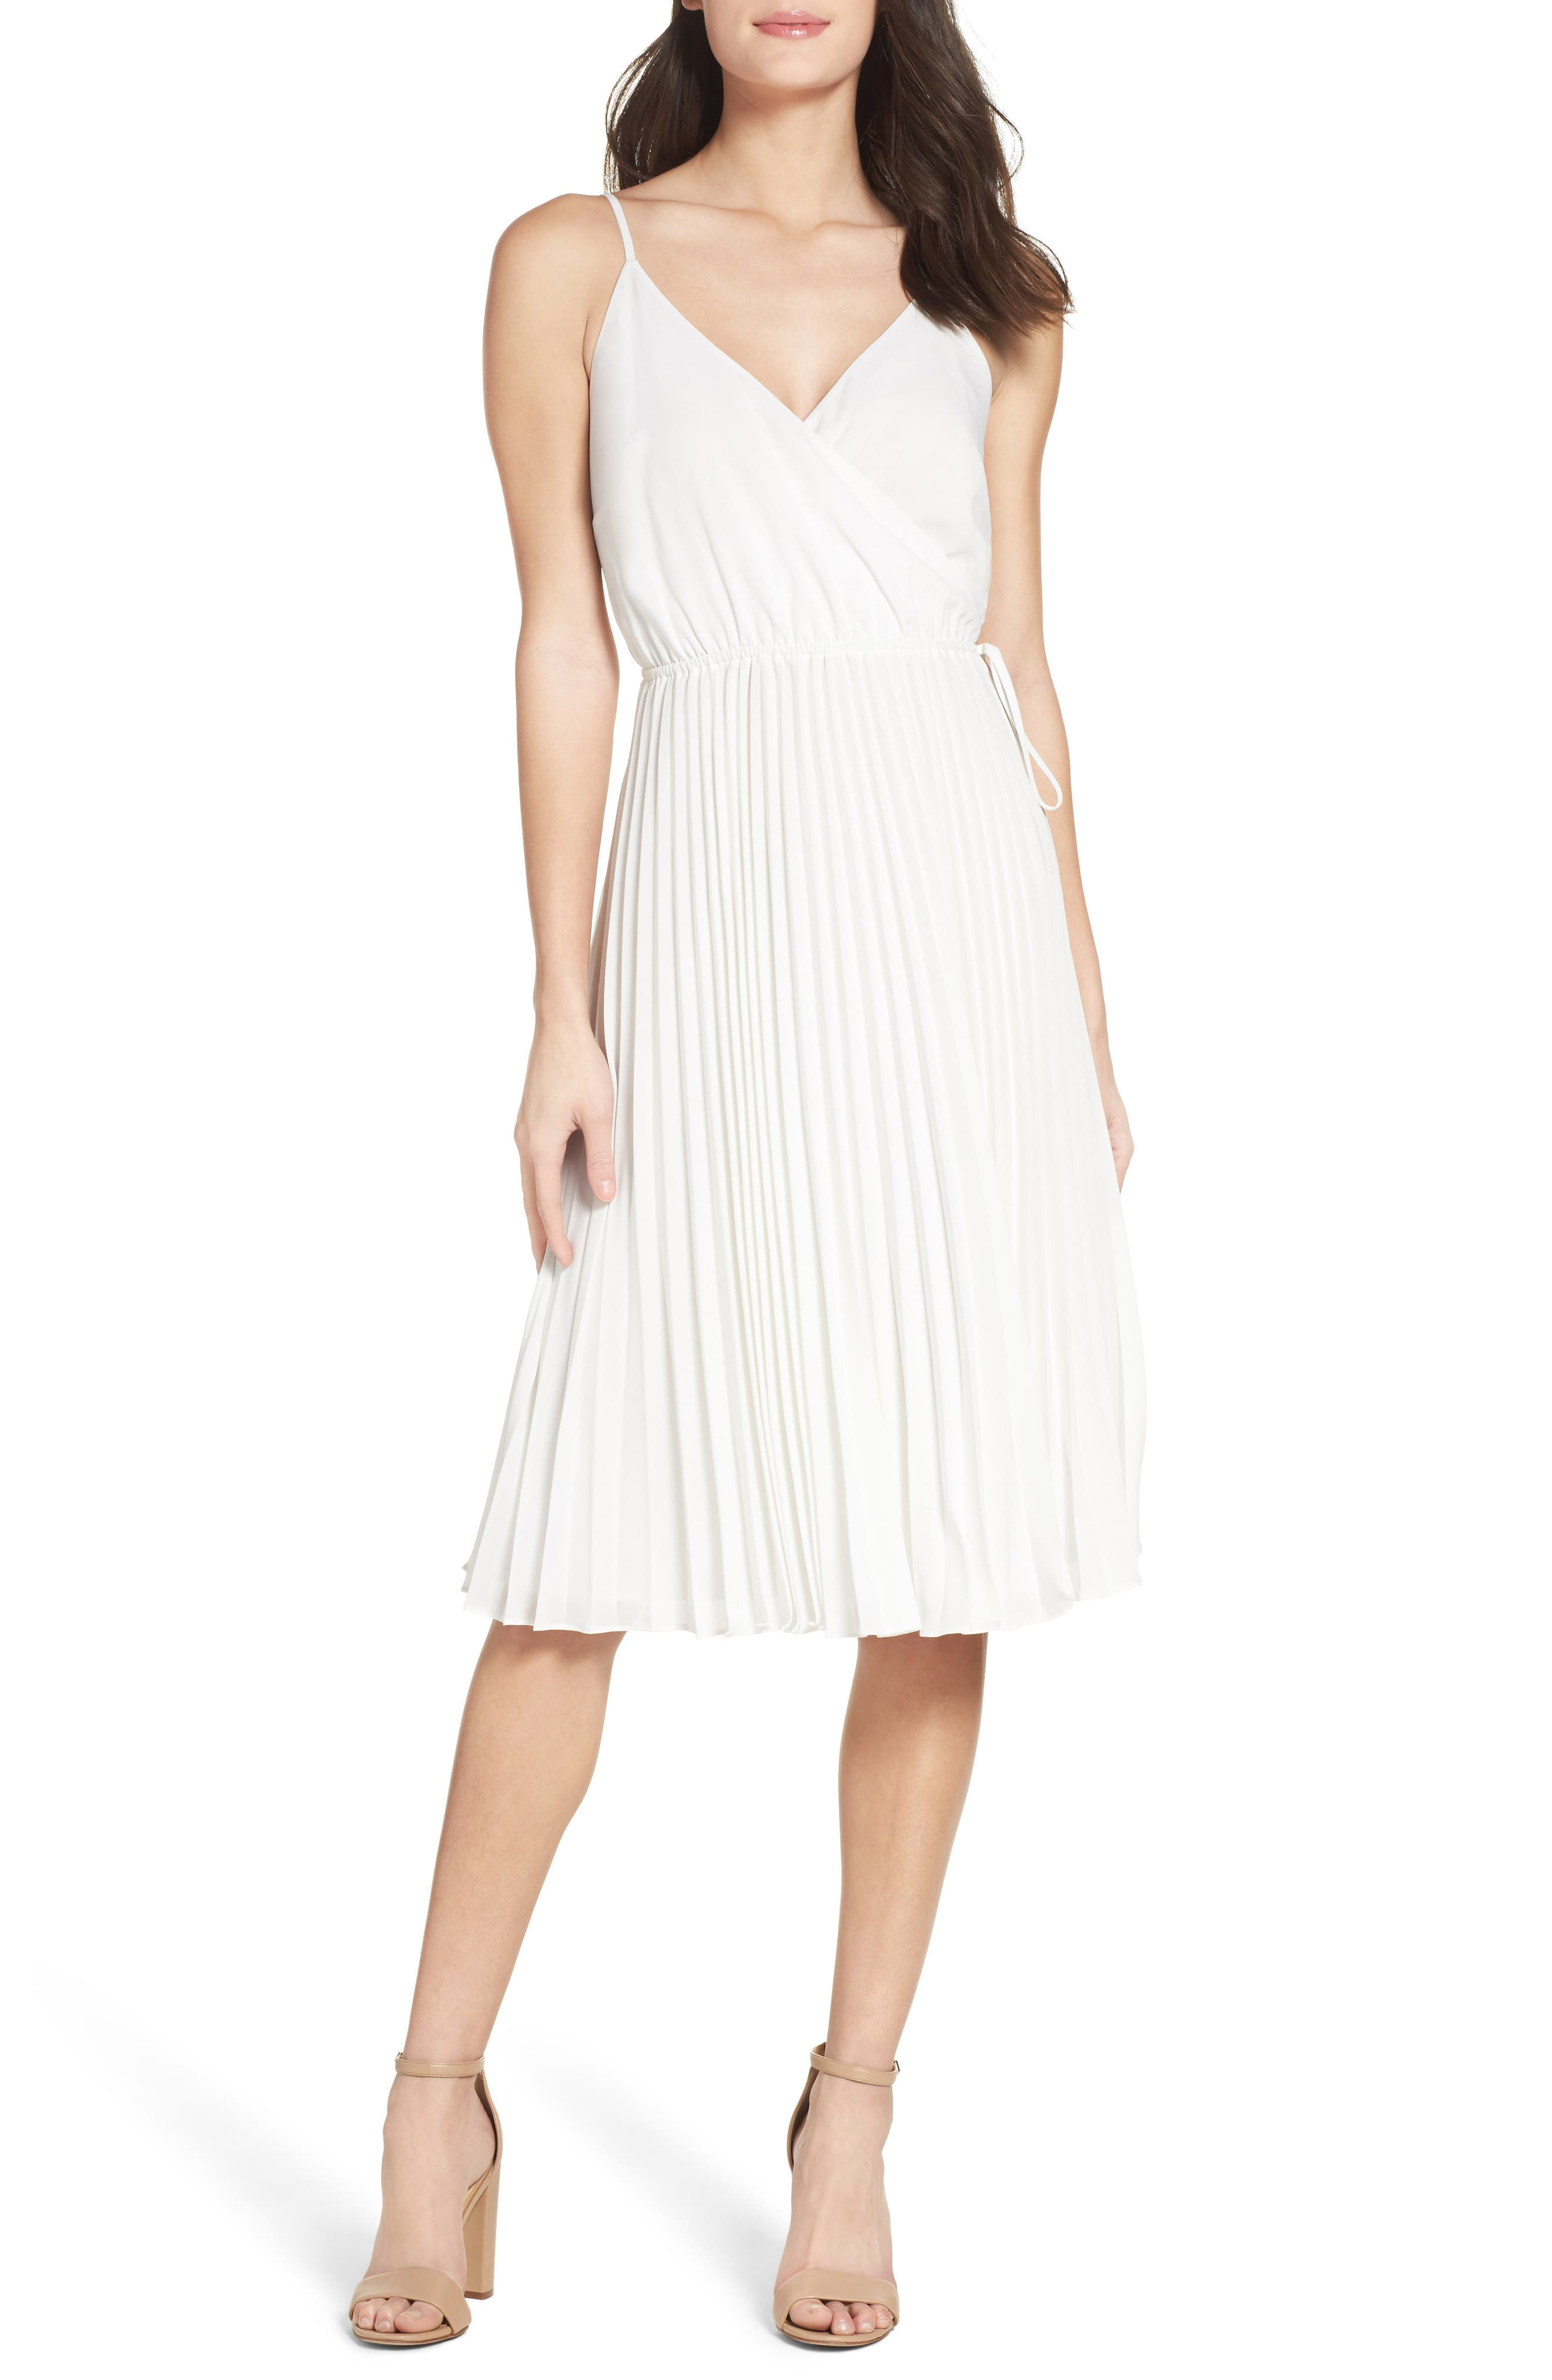 Lily Pond Fit & Flare Dress,                             Main thumbnail 1, color,                             WHITE